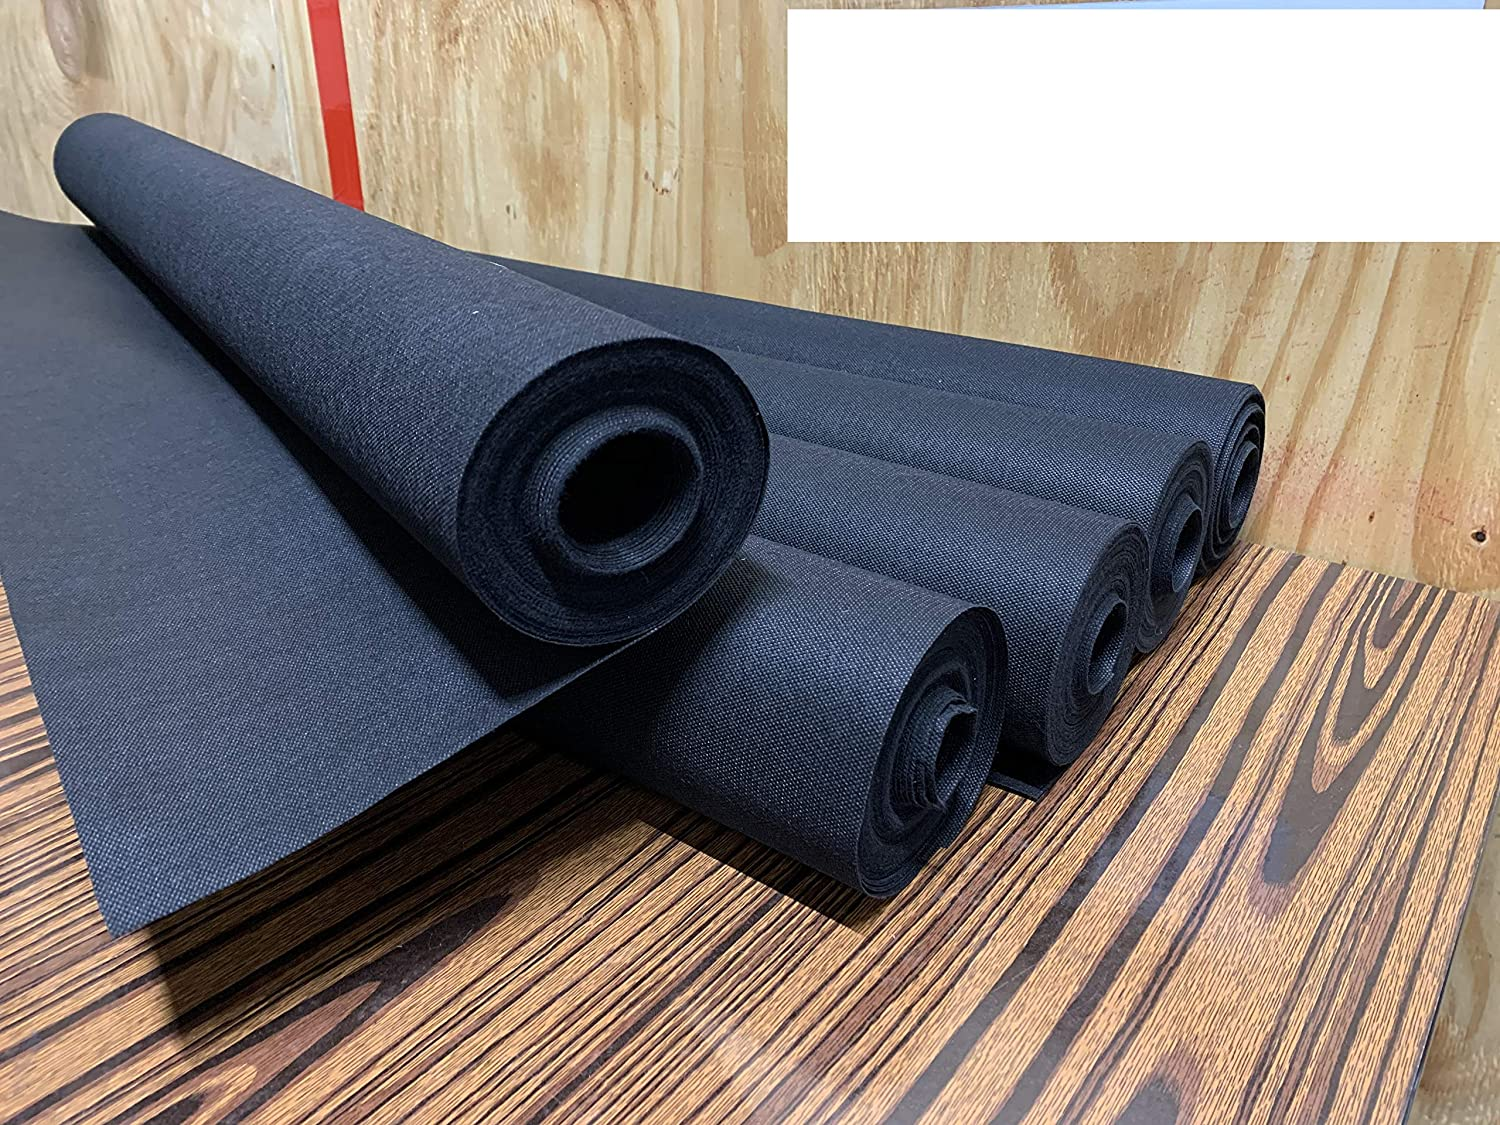 Dust Cover Heavy Duty Black Cambric oz 100g 15 depot = 3.50 Daily bargain sale 39.5